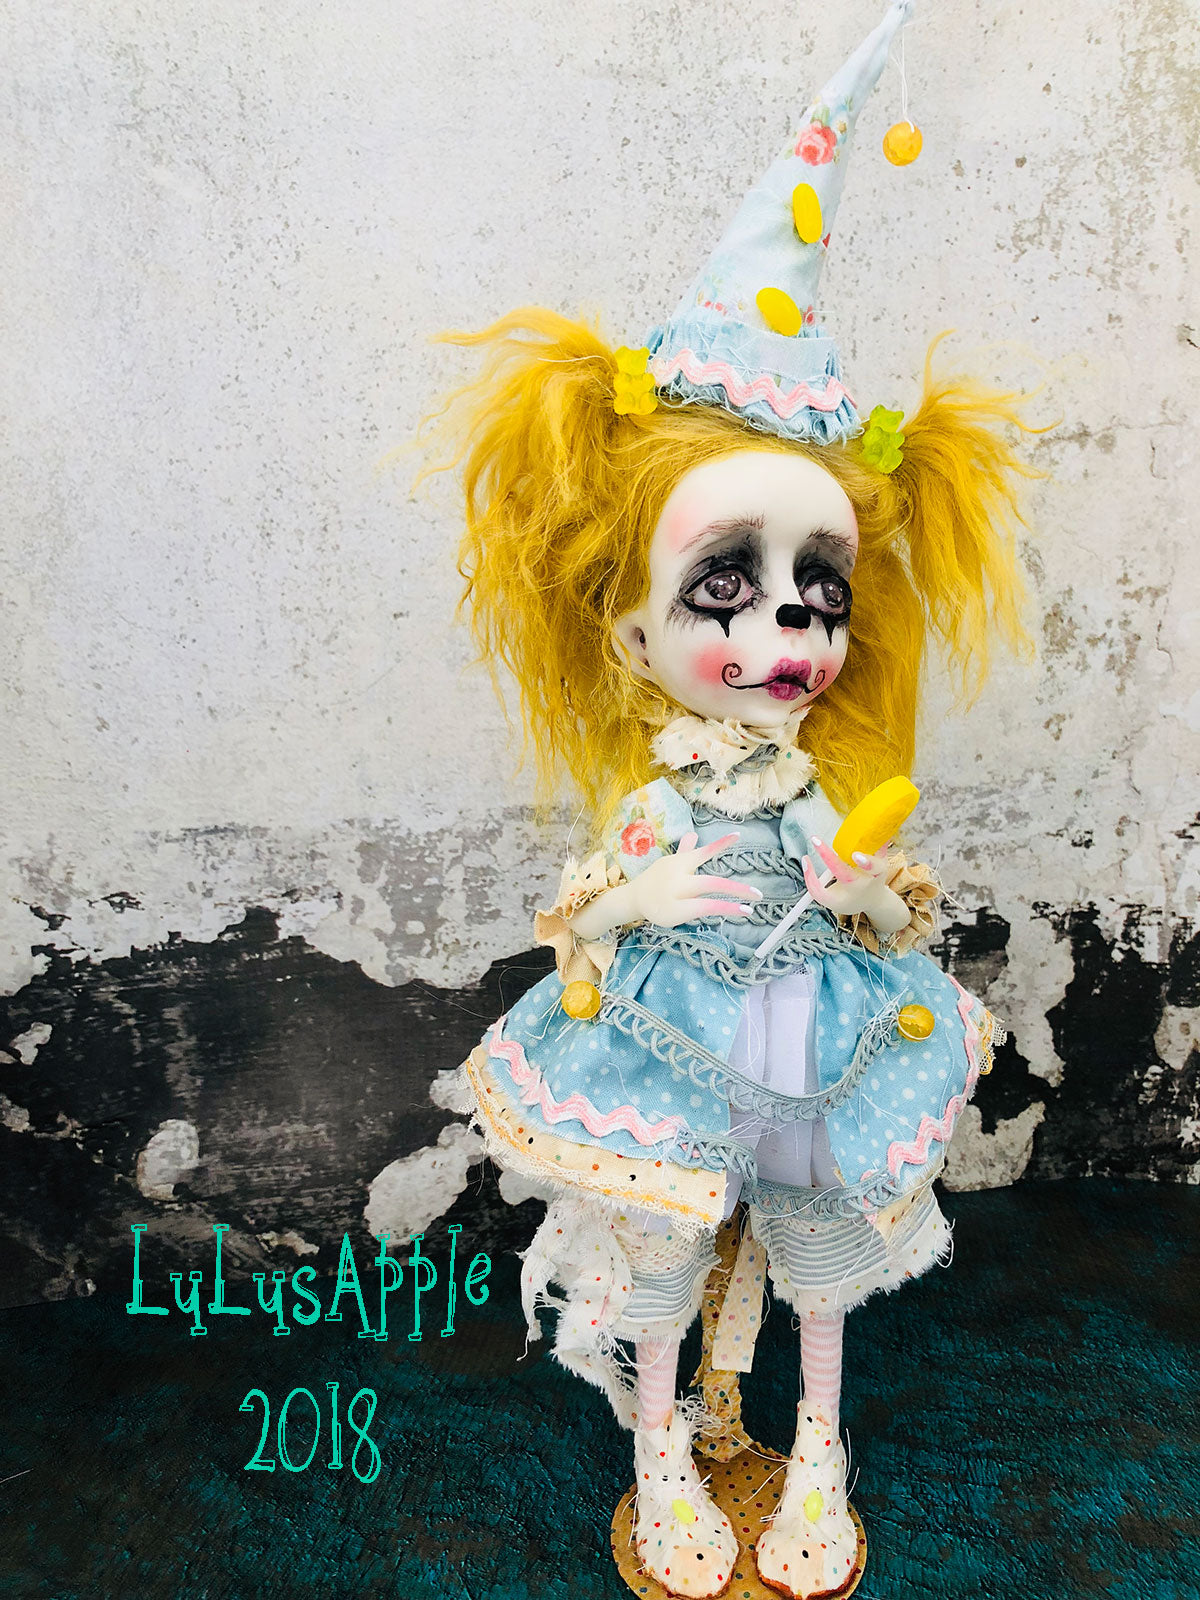 Tootie Twinkie The Clown Circus sadness OOAK LuLusApple Art Doll